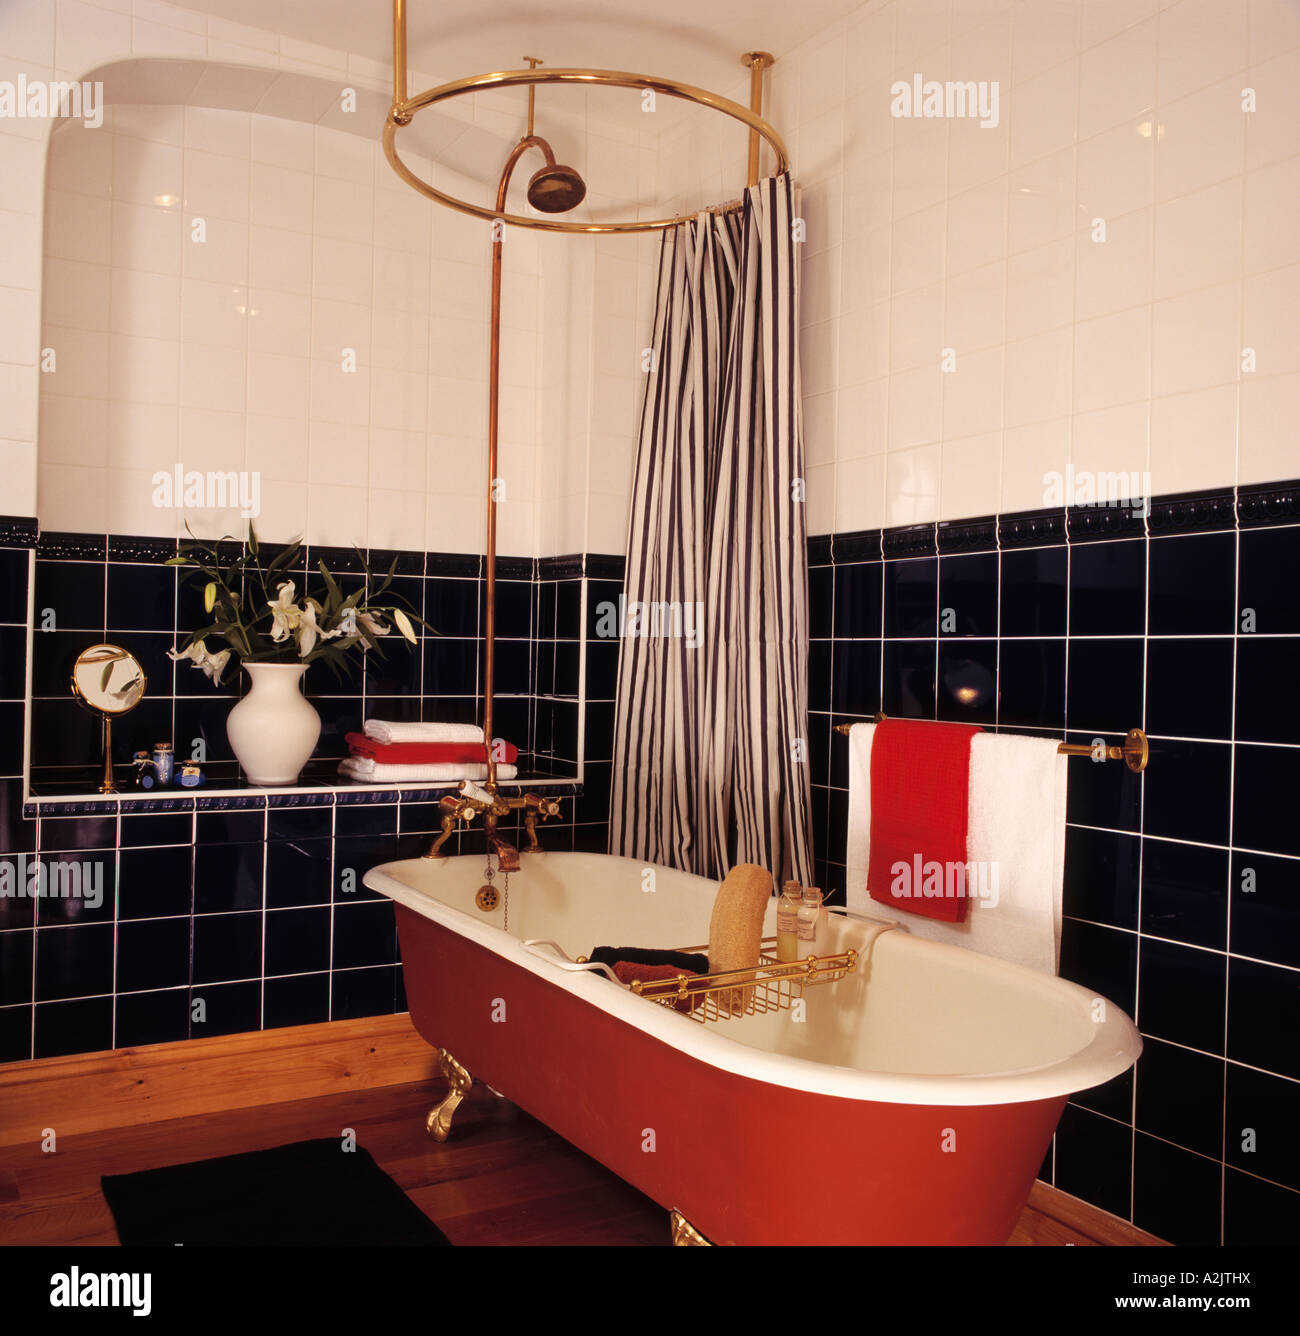 Striped Shower Curtain On Circular Rail Above Red Freestanding Bath Stock Photo Royalty Free